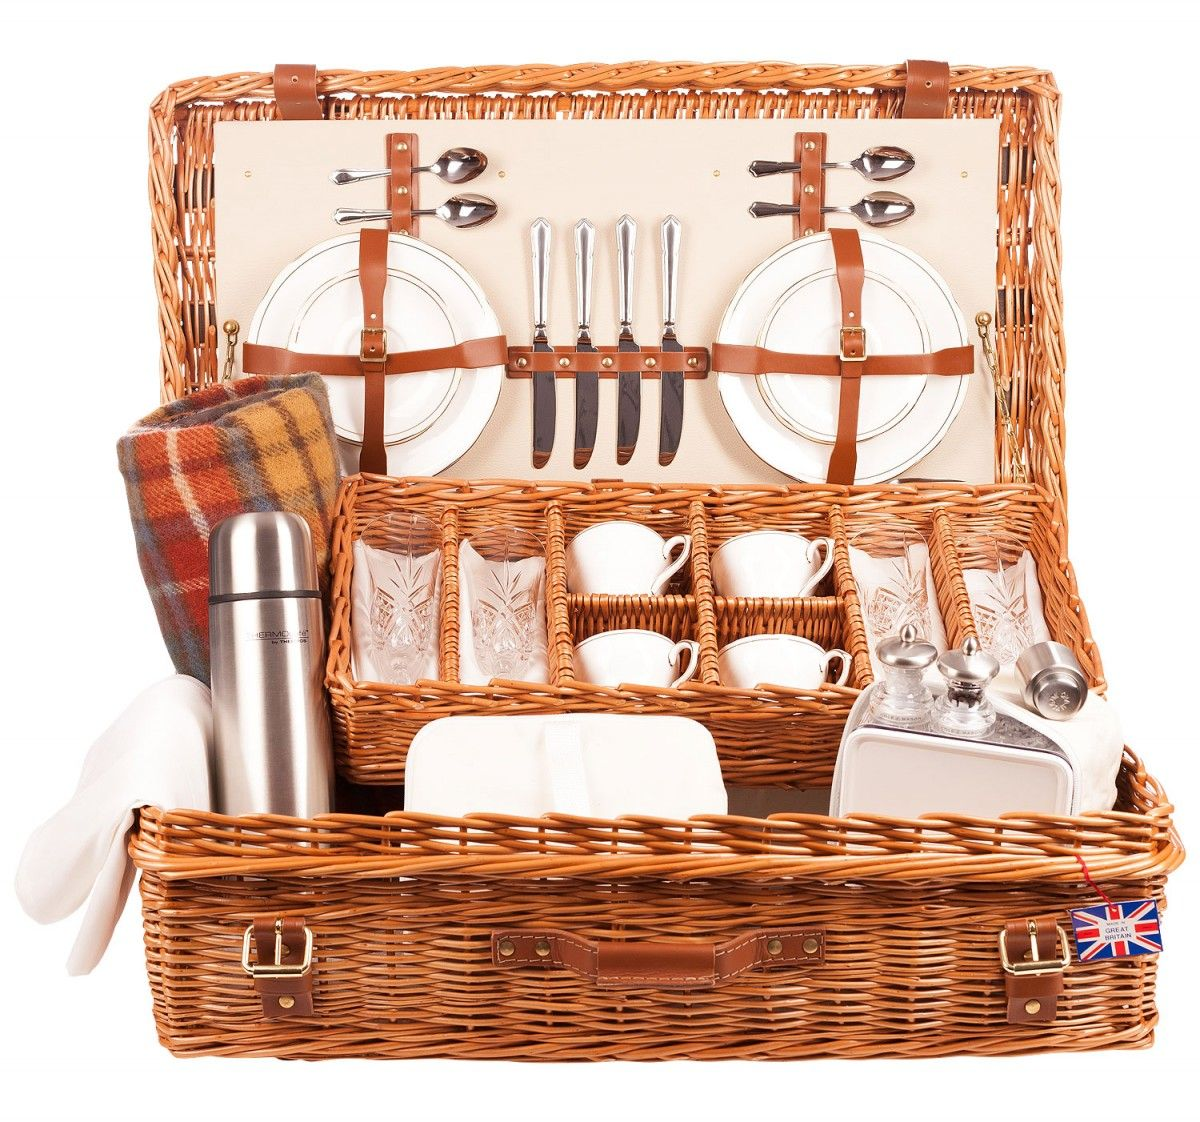 The Goodwood 4 Person Luxury Picnic Hamper In Cream